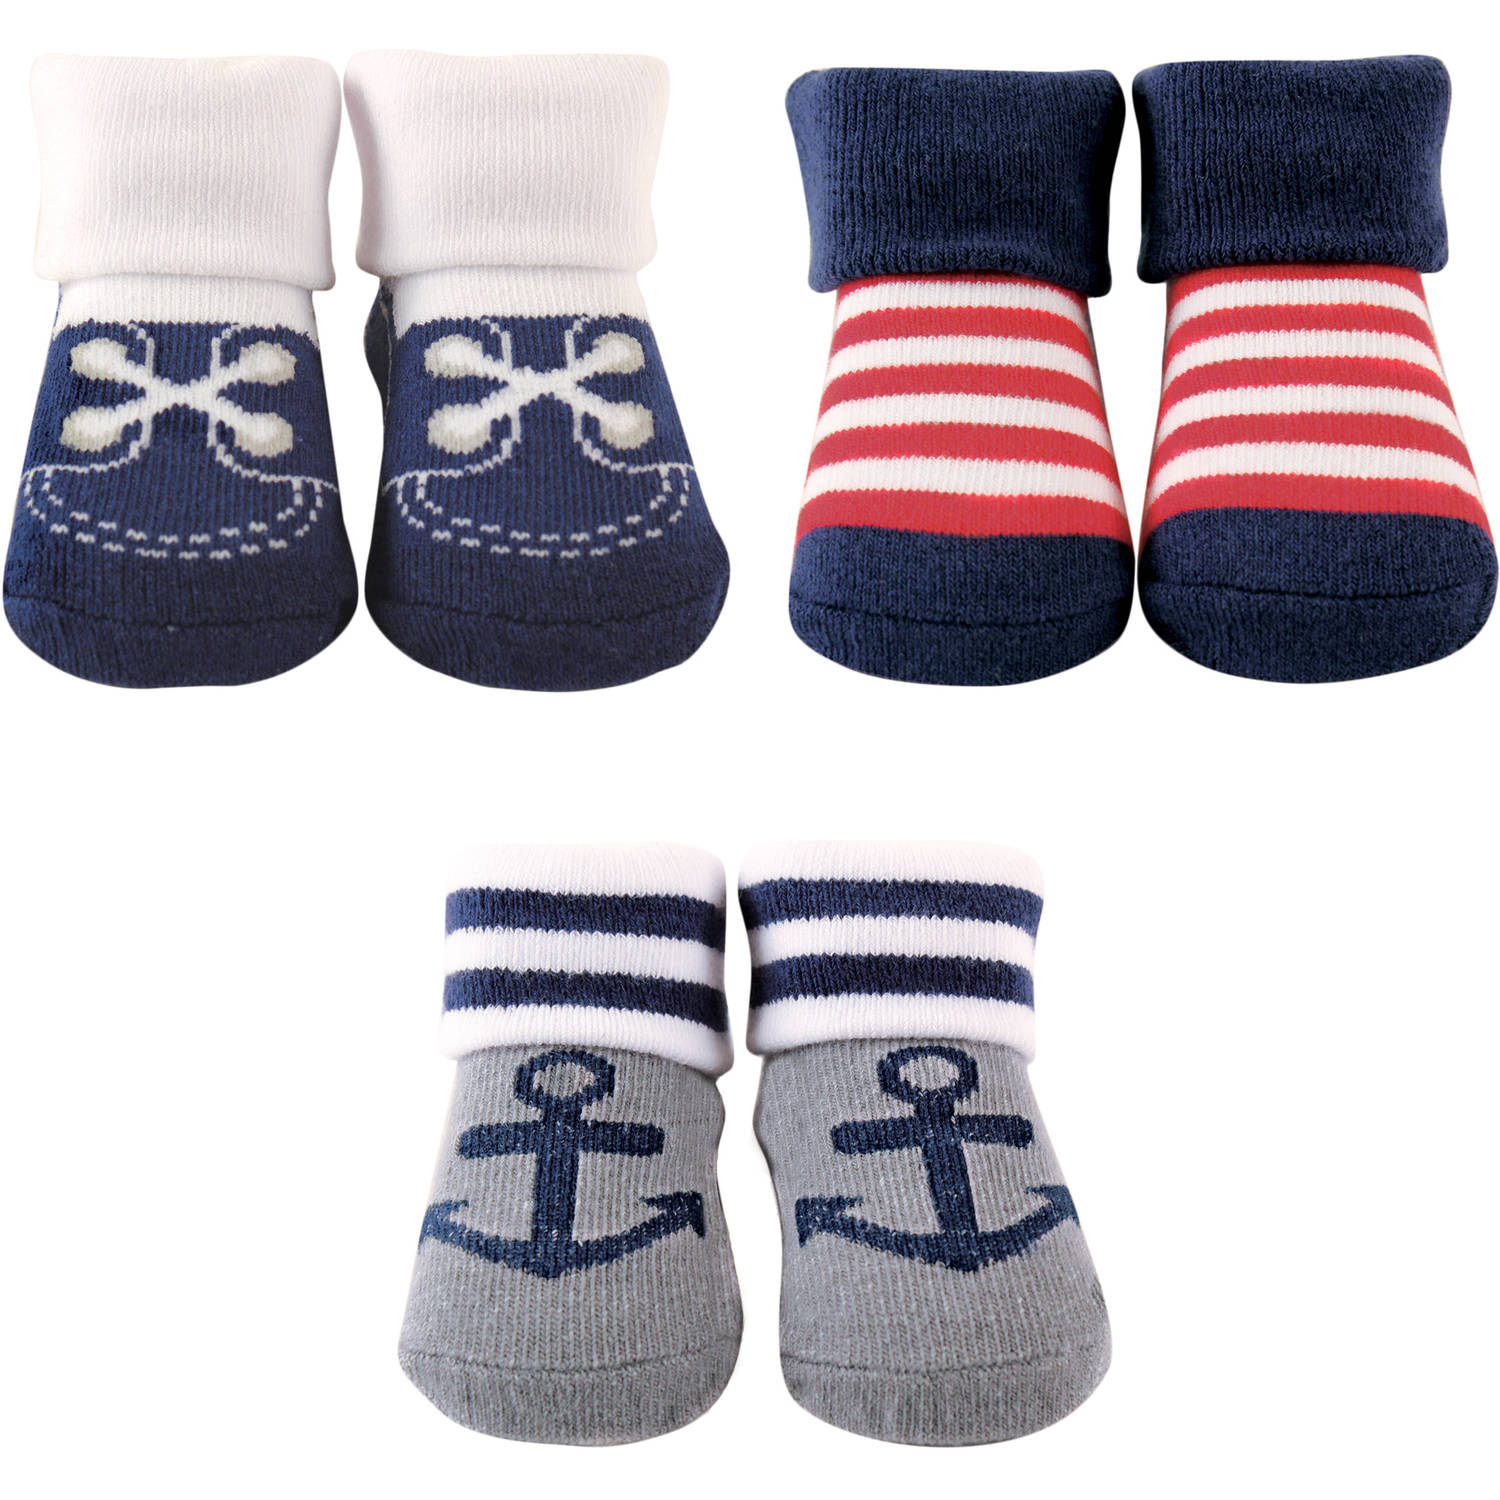 Luvable Friends Newborn Baby Boy Socks Giftset 3-Piece